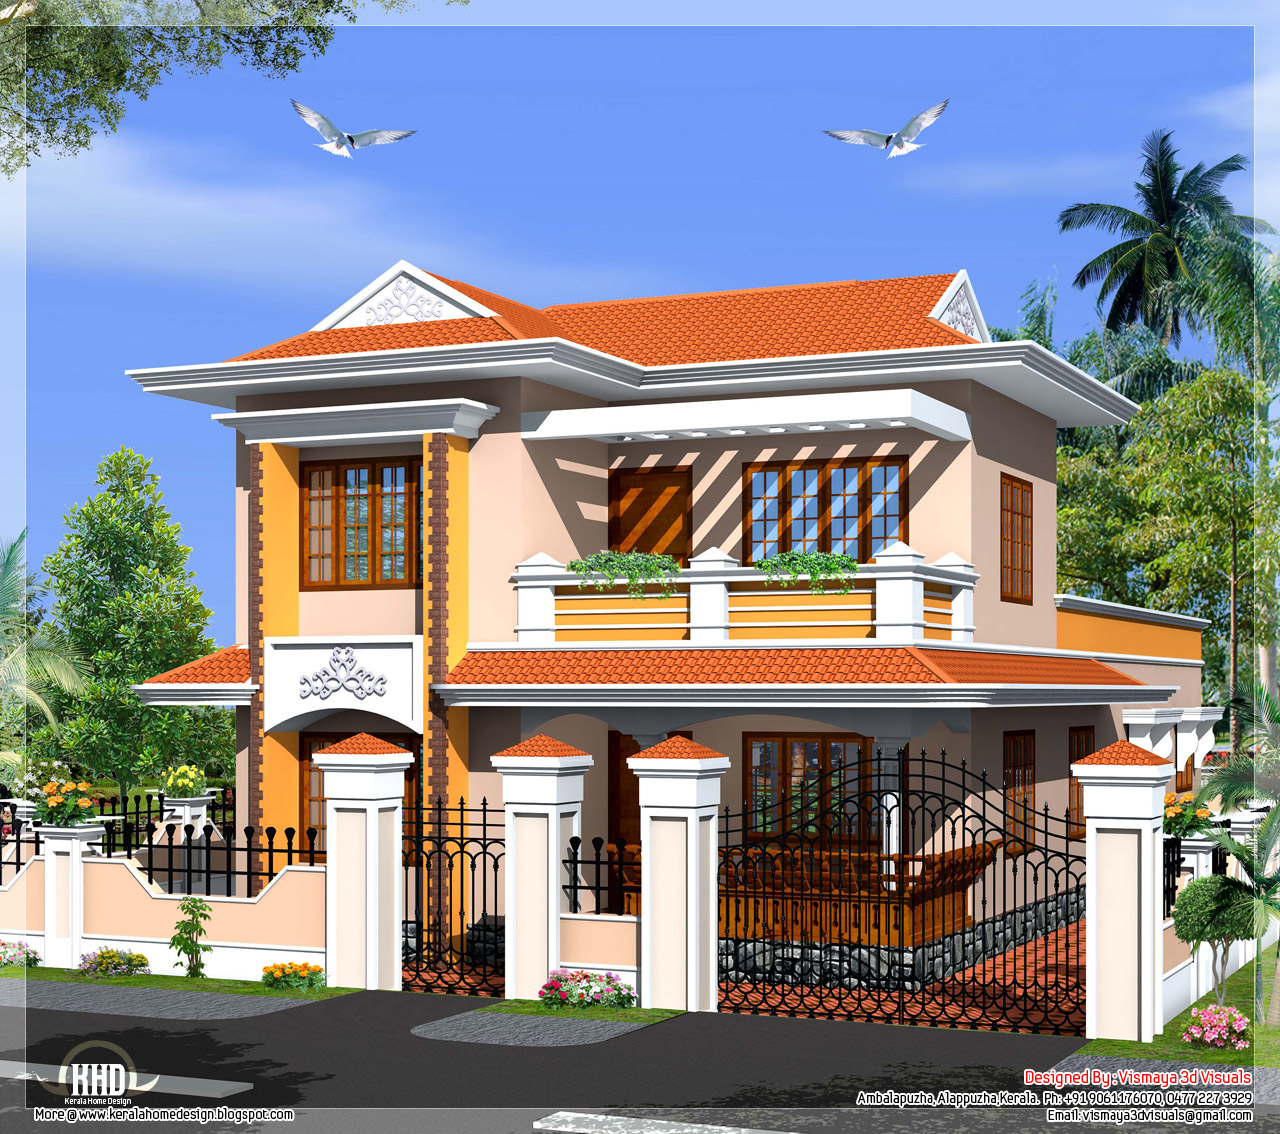 Kerala Model Home Plans: Kerala Model Villa In 2110 In Square Feet